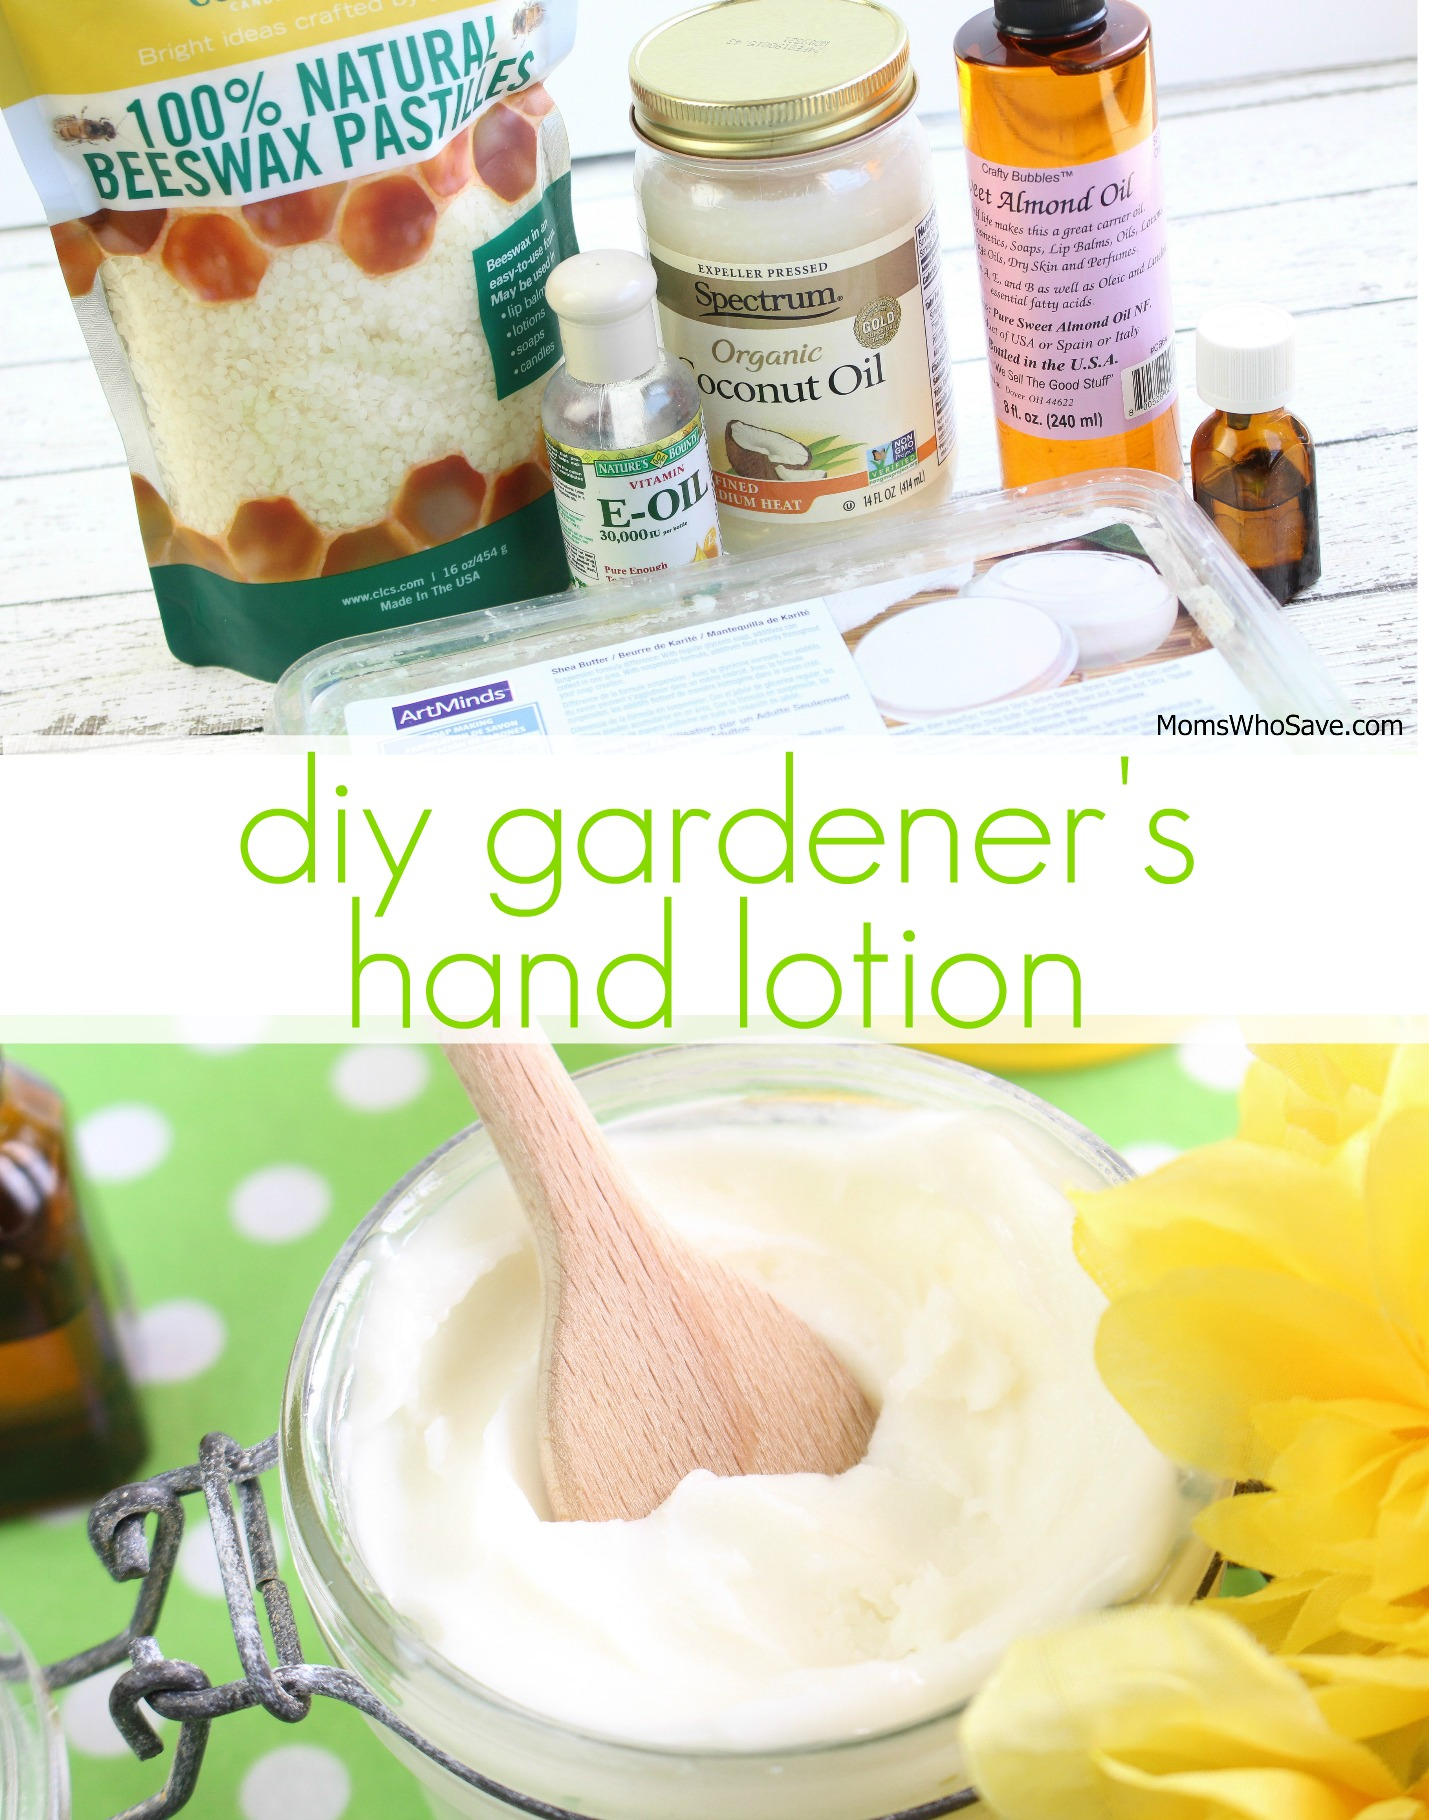 diy hand lotion instructions